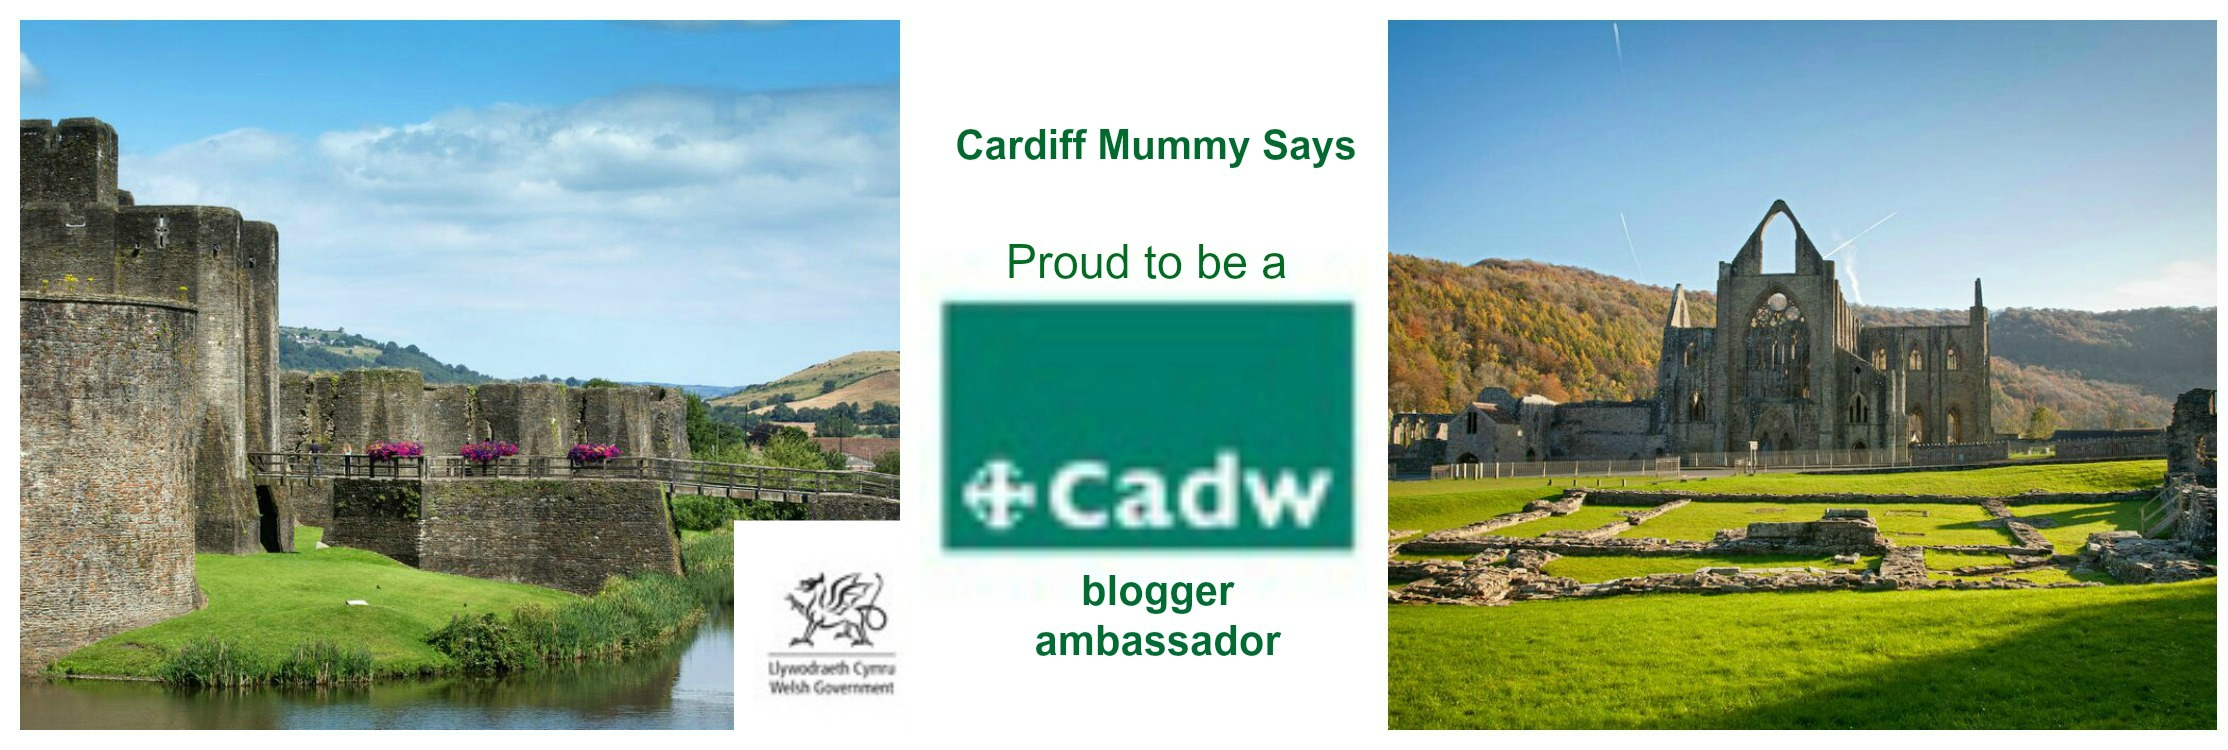 cardiff mummy says official cadw blogger ambassador